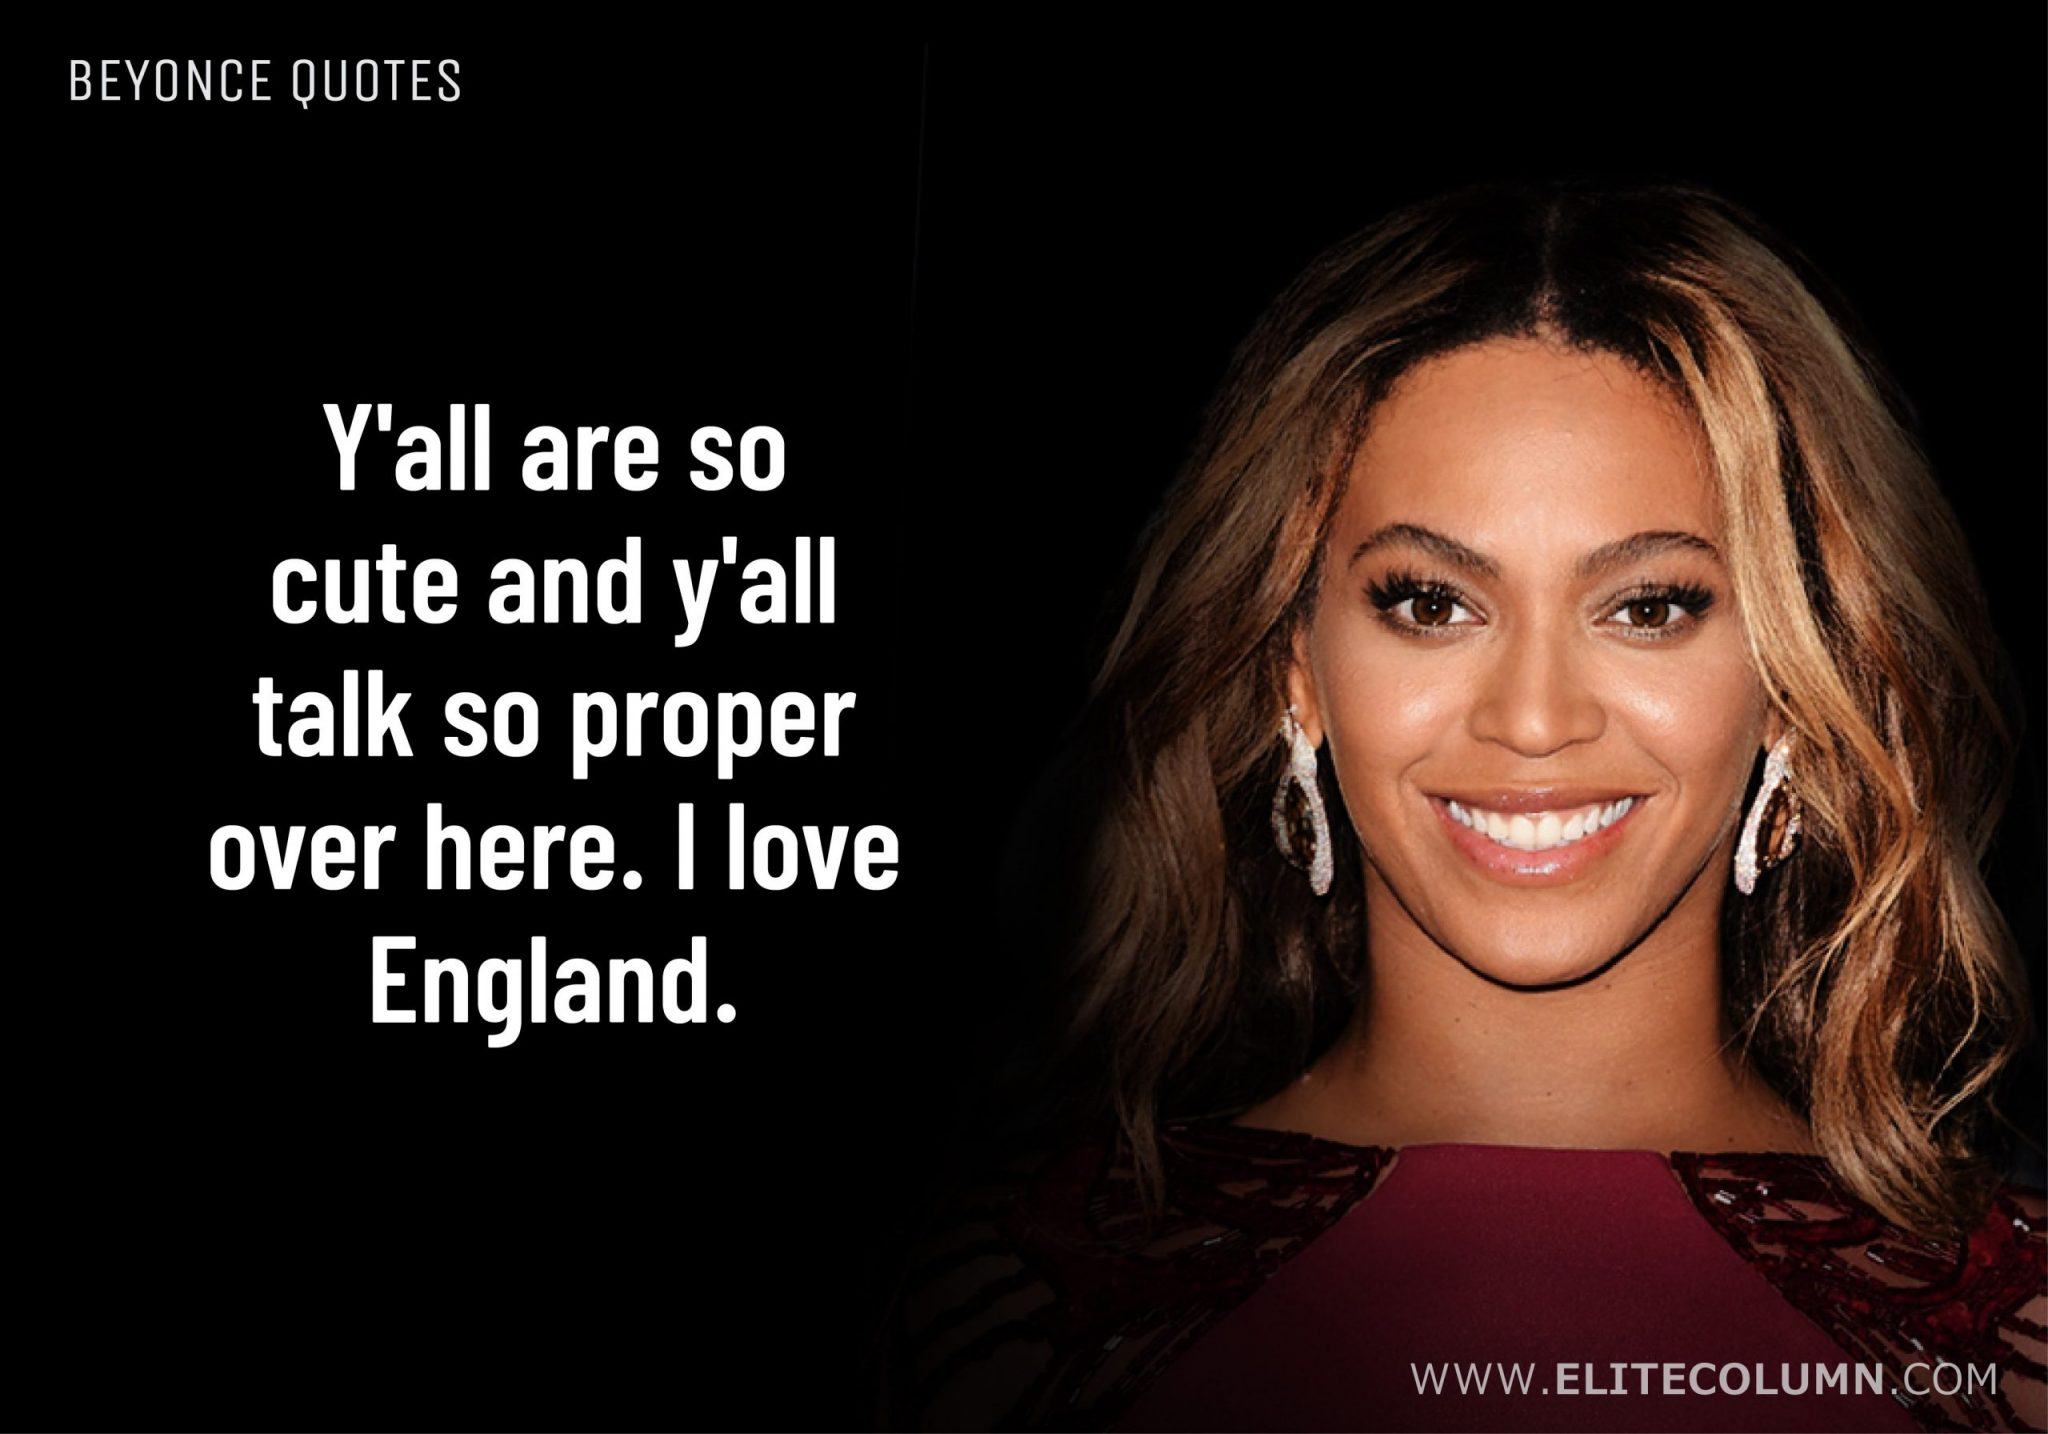 Beyonce Quotes (3)